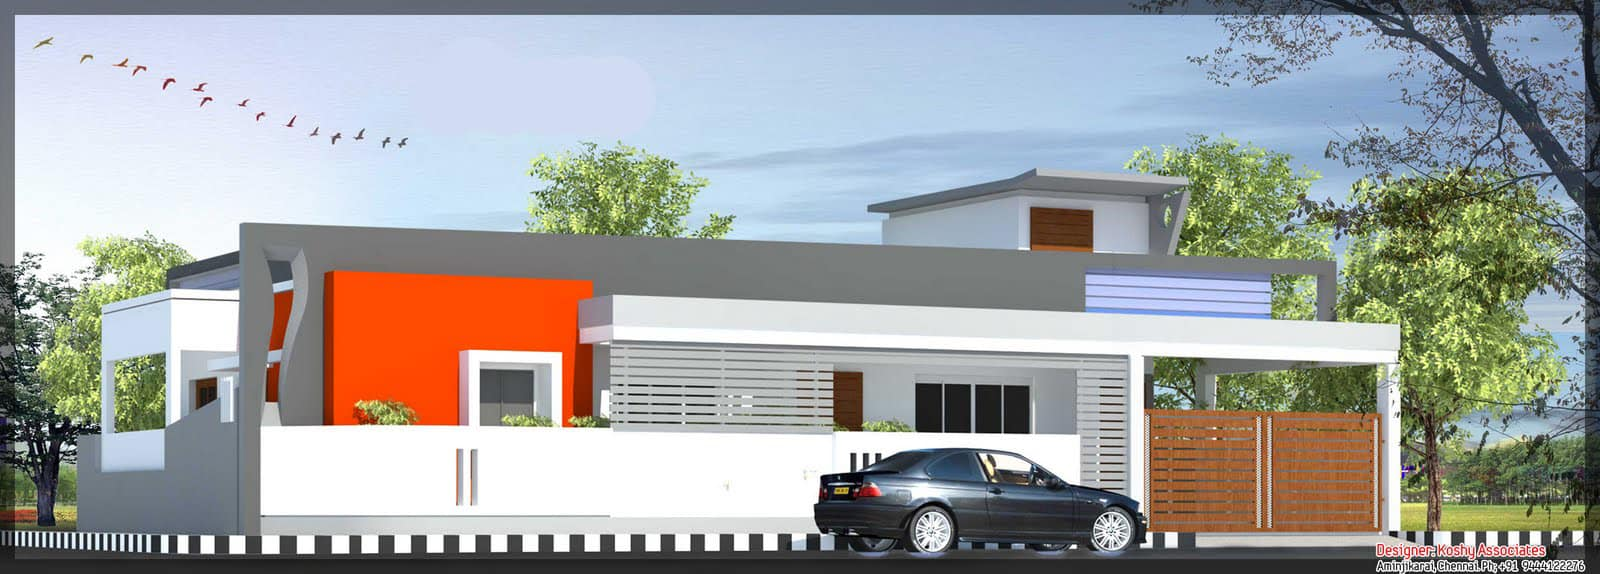 single floor house plans india below 1500 sq ft keralahouseplanner